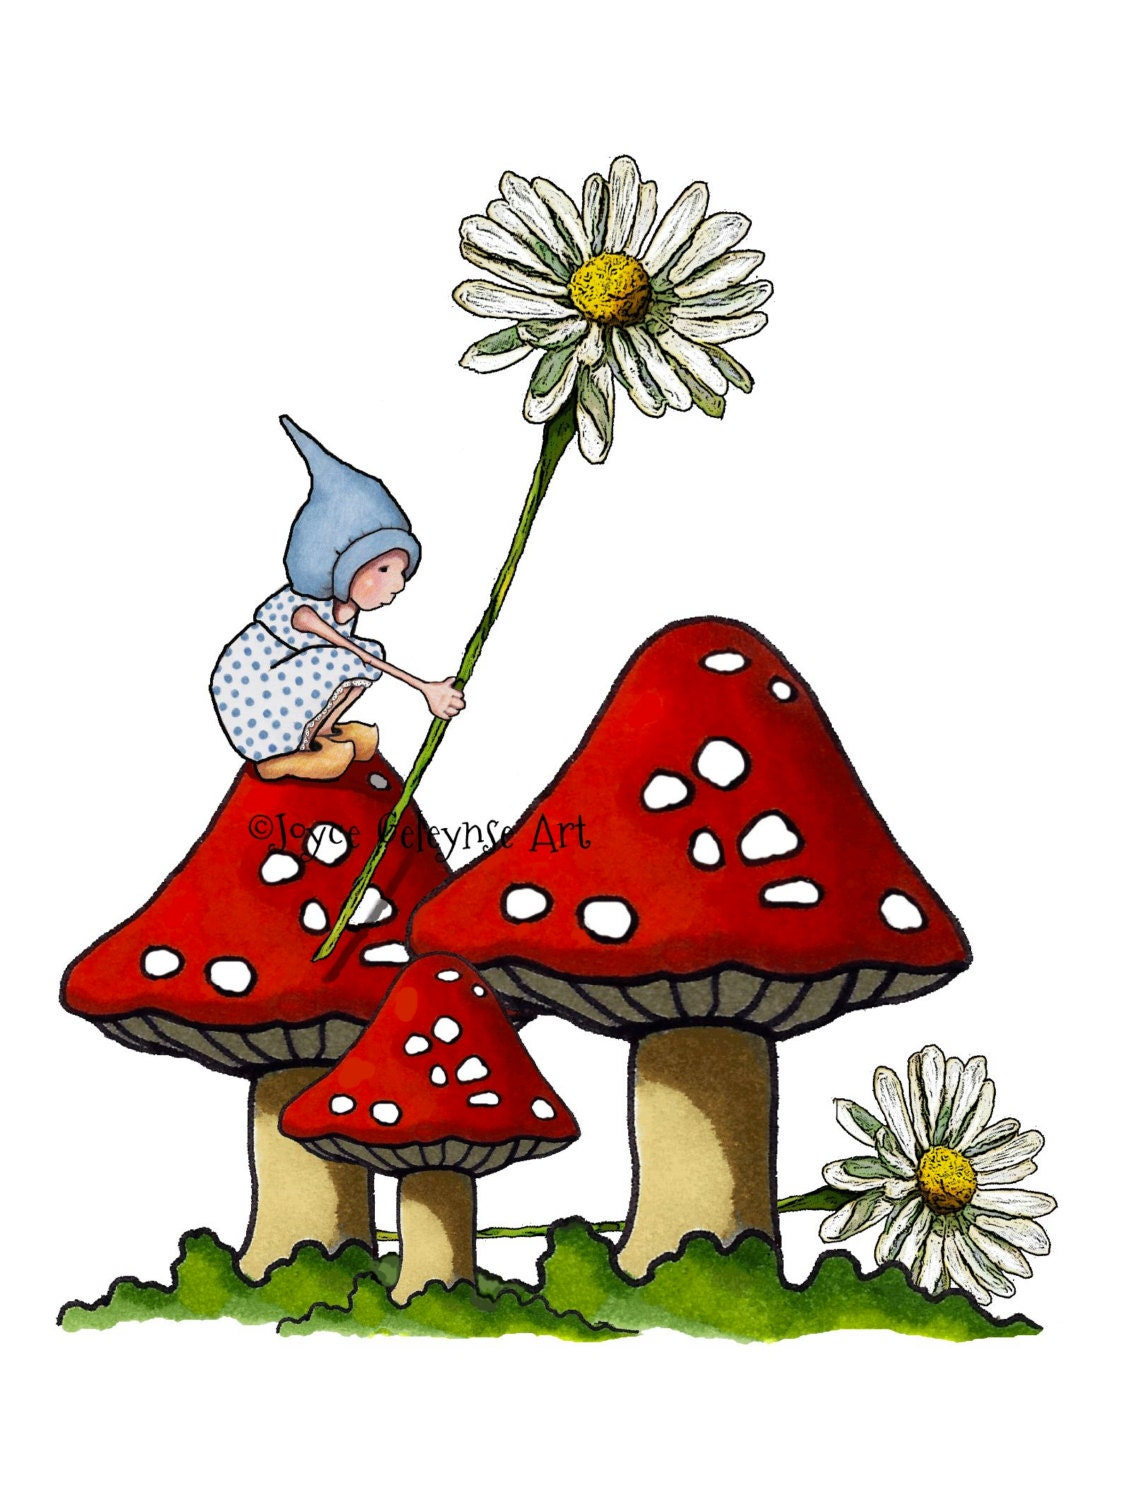 Gnome Clip Art: Clipart Hand Drawn Printable Gnome Girl On Toadstool Daisies